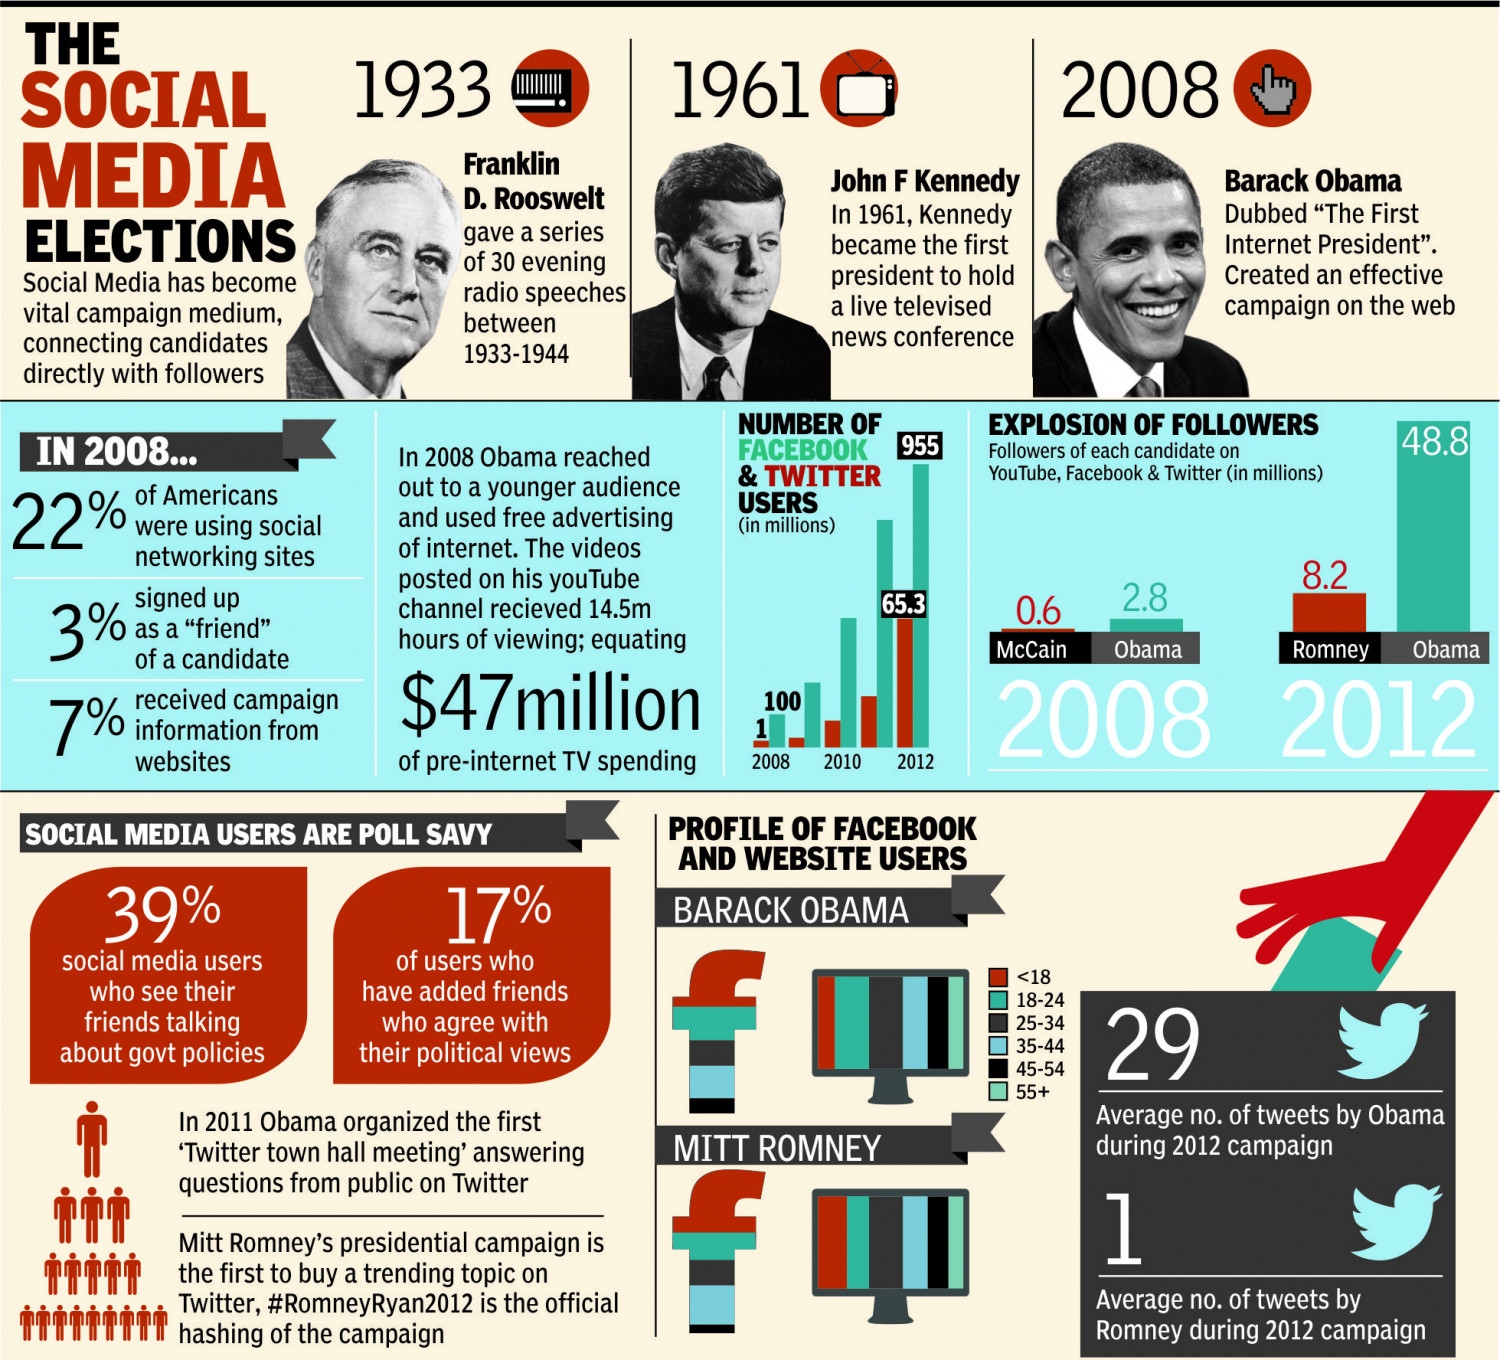 The Social Media Elections Infographic